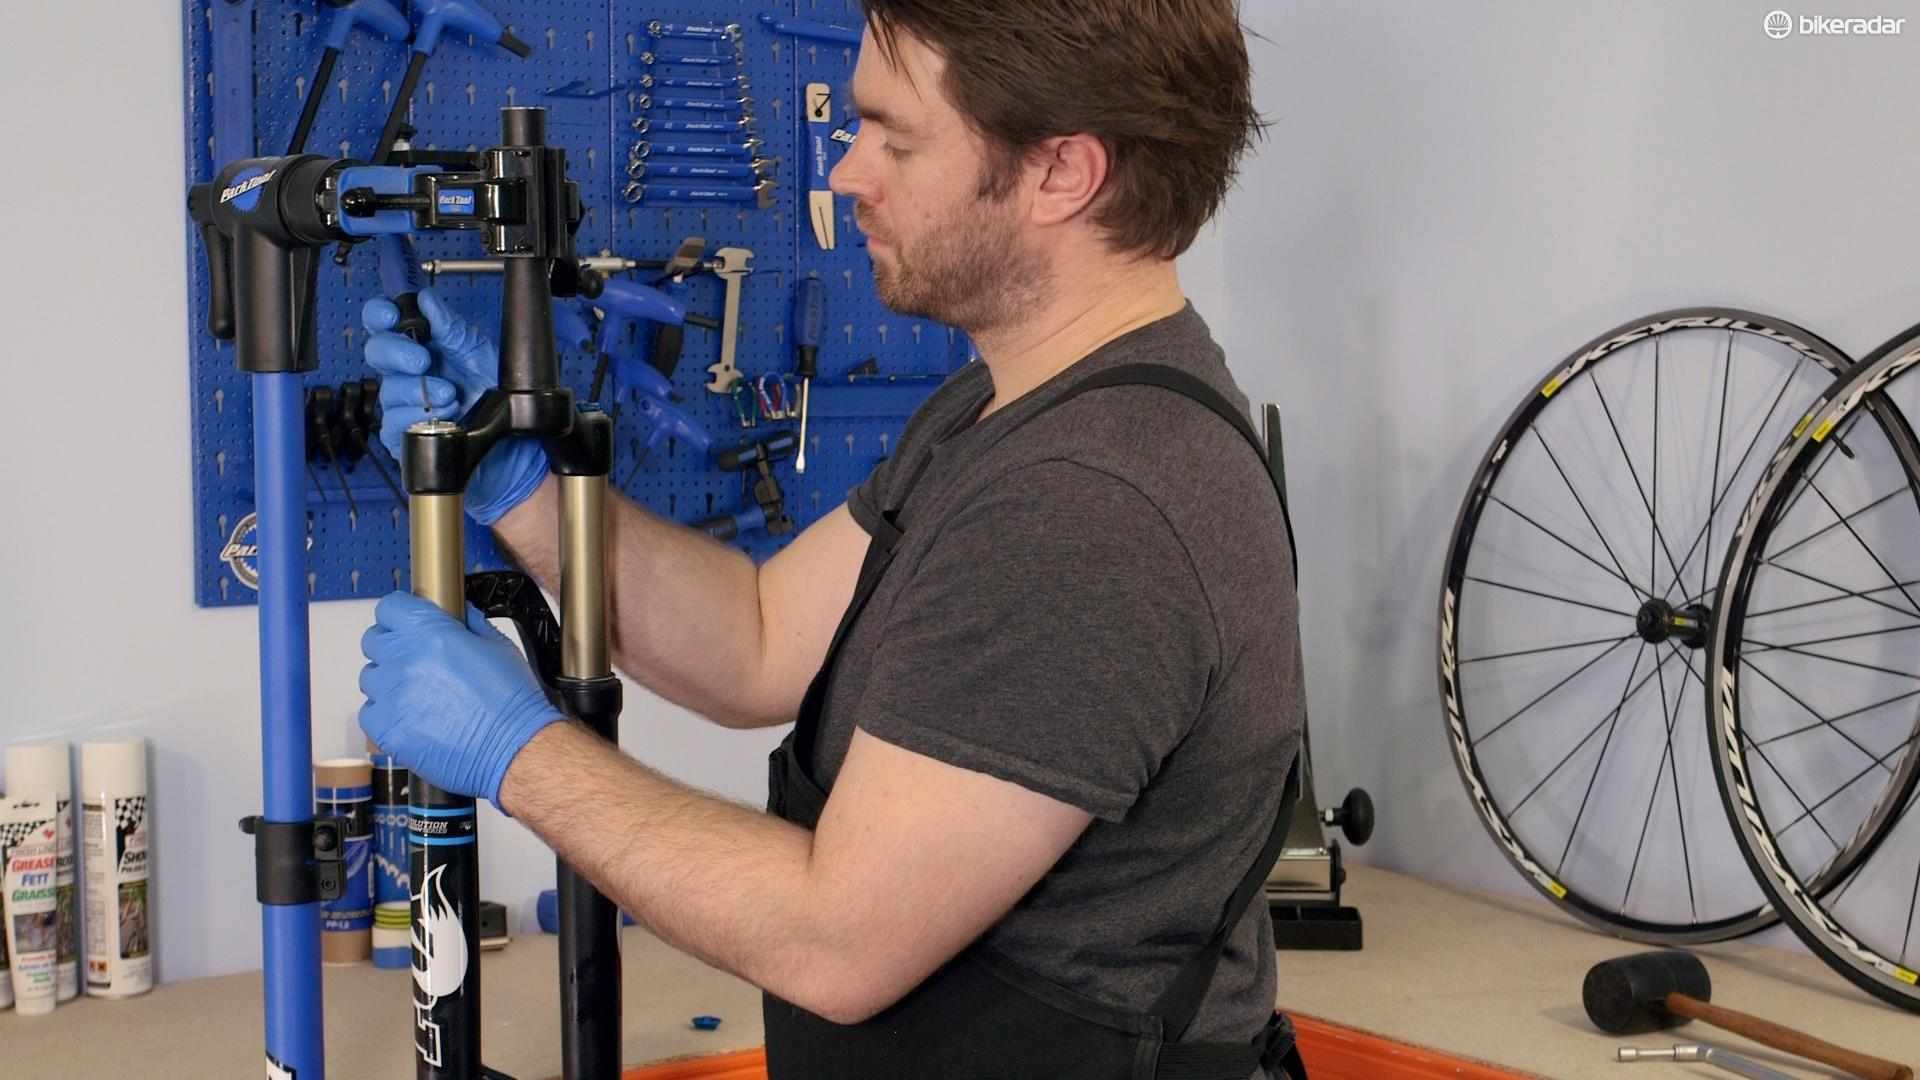 Clamp the fork in a workstand, unscrew the valve clamp and release all the air from the fork